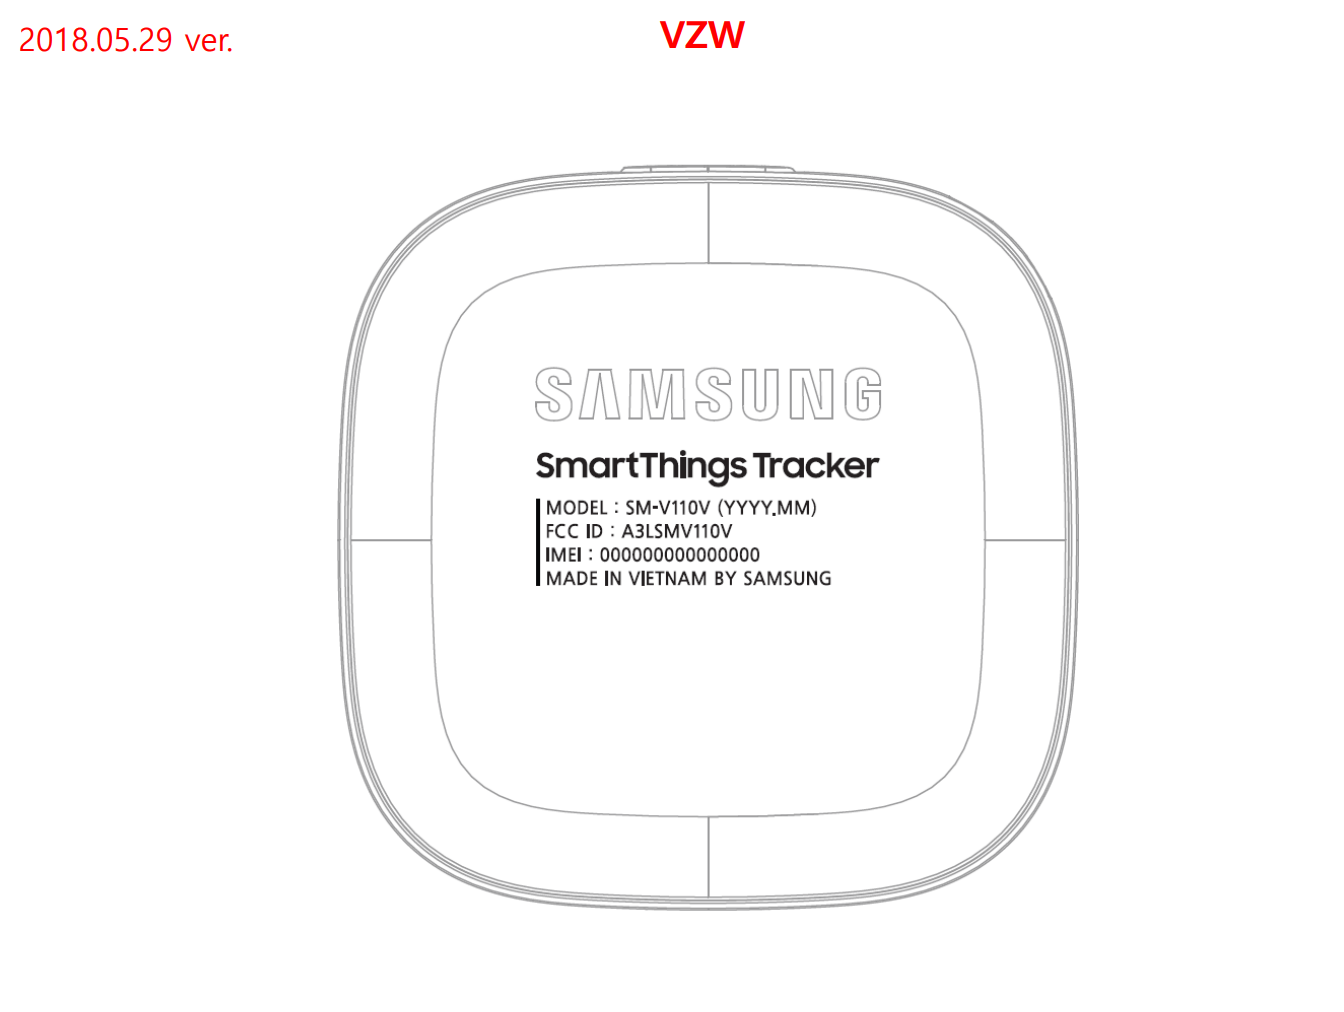 att cat 5 diagram launching soon samsung s smartthings tracker  a consumer nb iot  smartthings tracker  a consumer nb iot